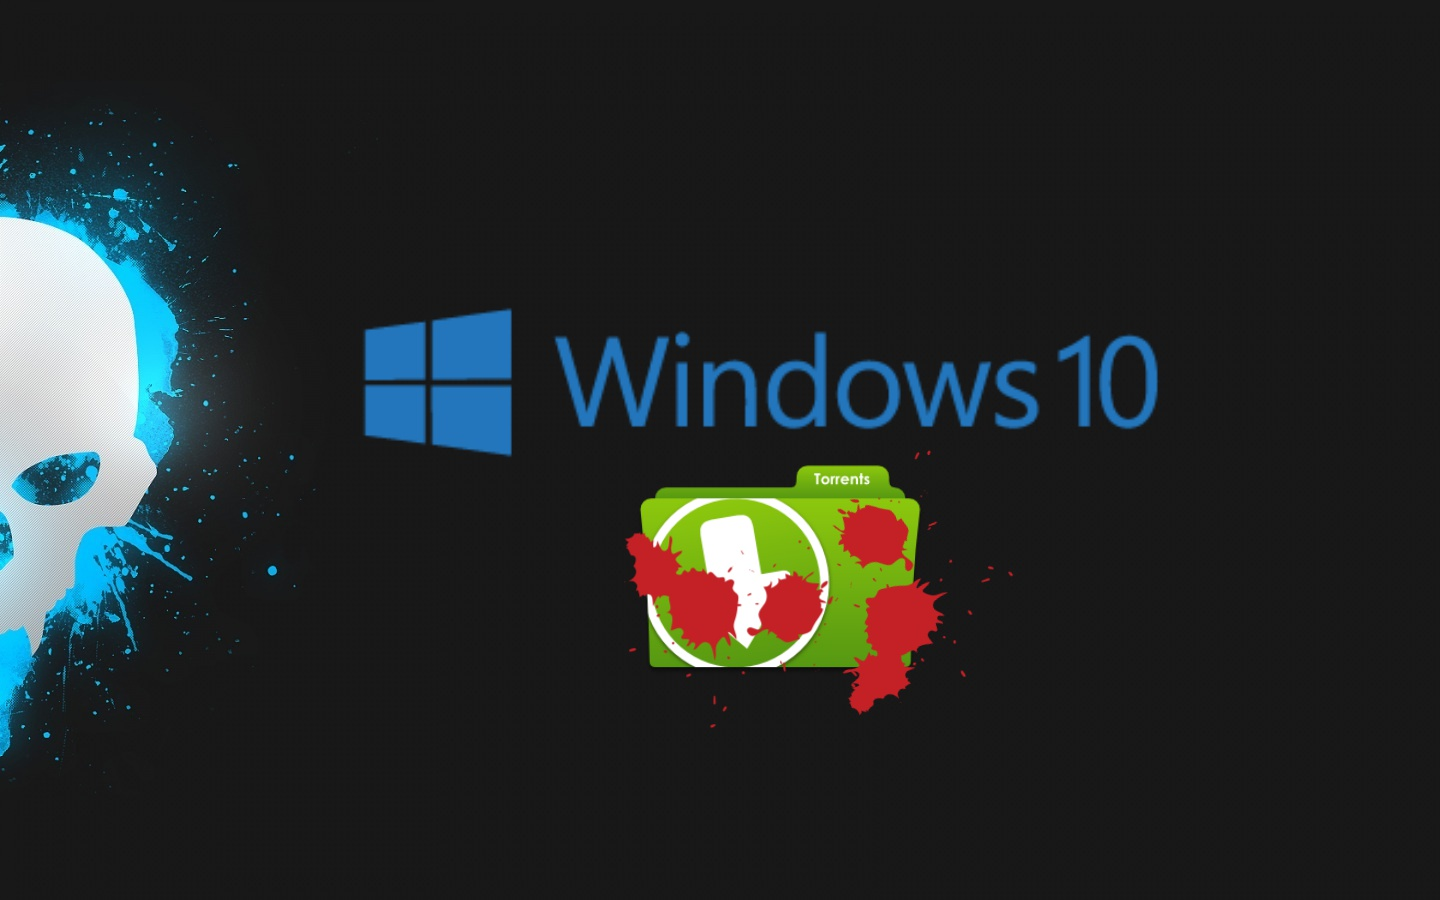 windows-10-users-banned-from-torrent-tracker-websites